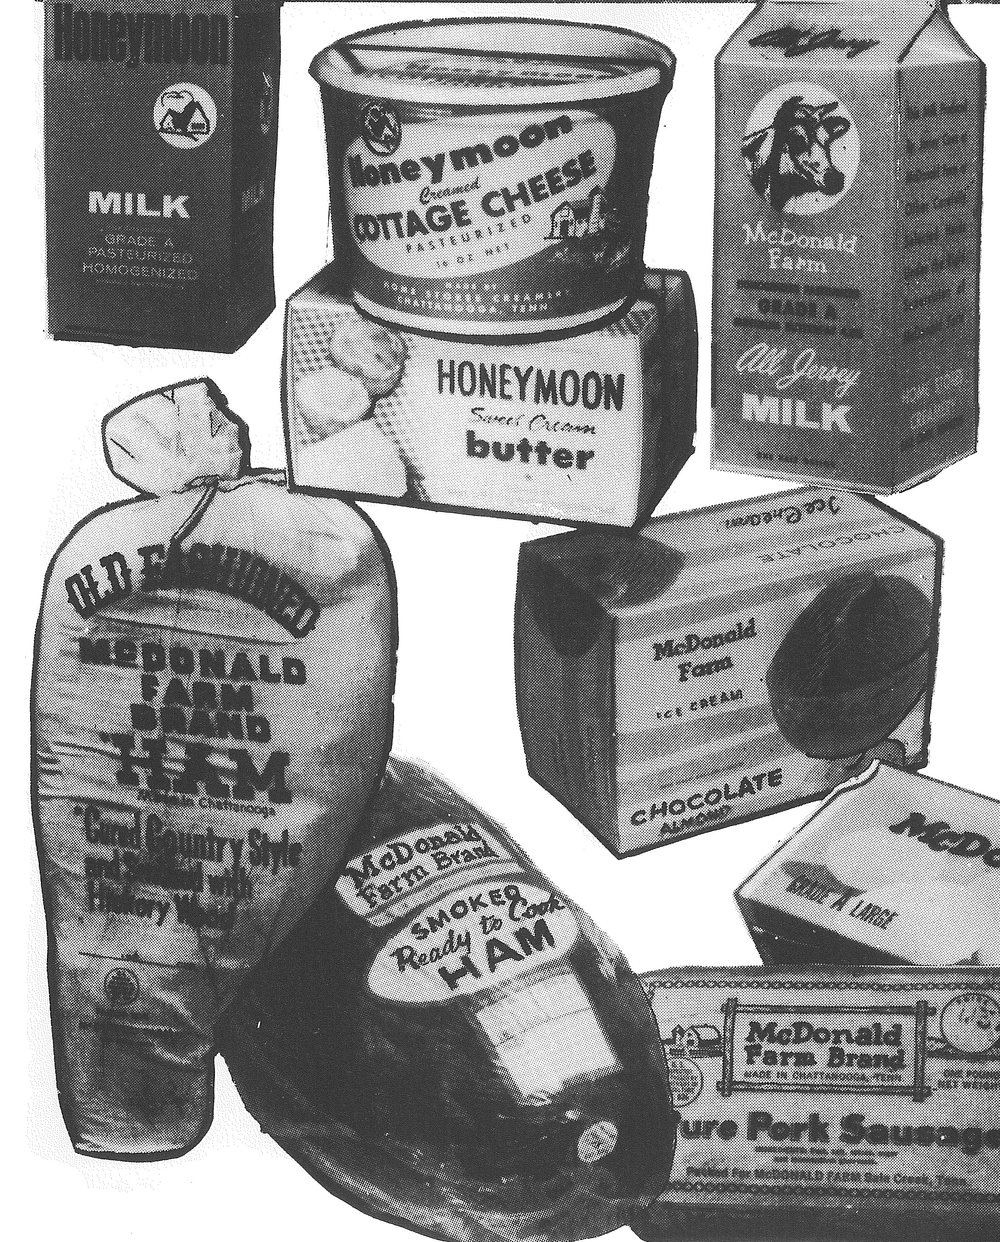 The Farm_McDonald Farm Products_0014.jpg